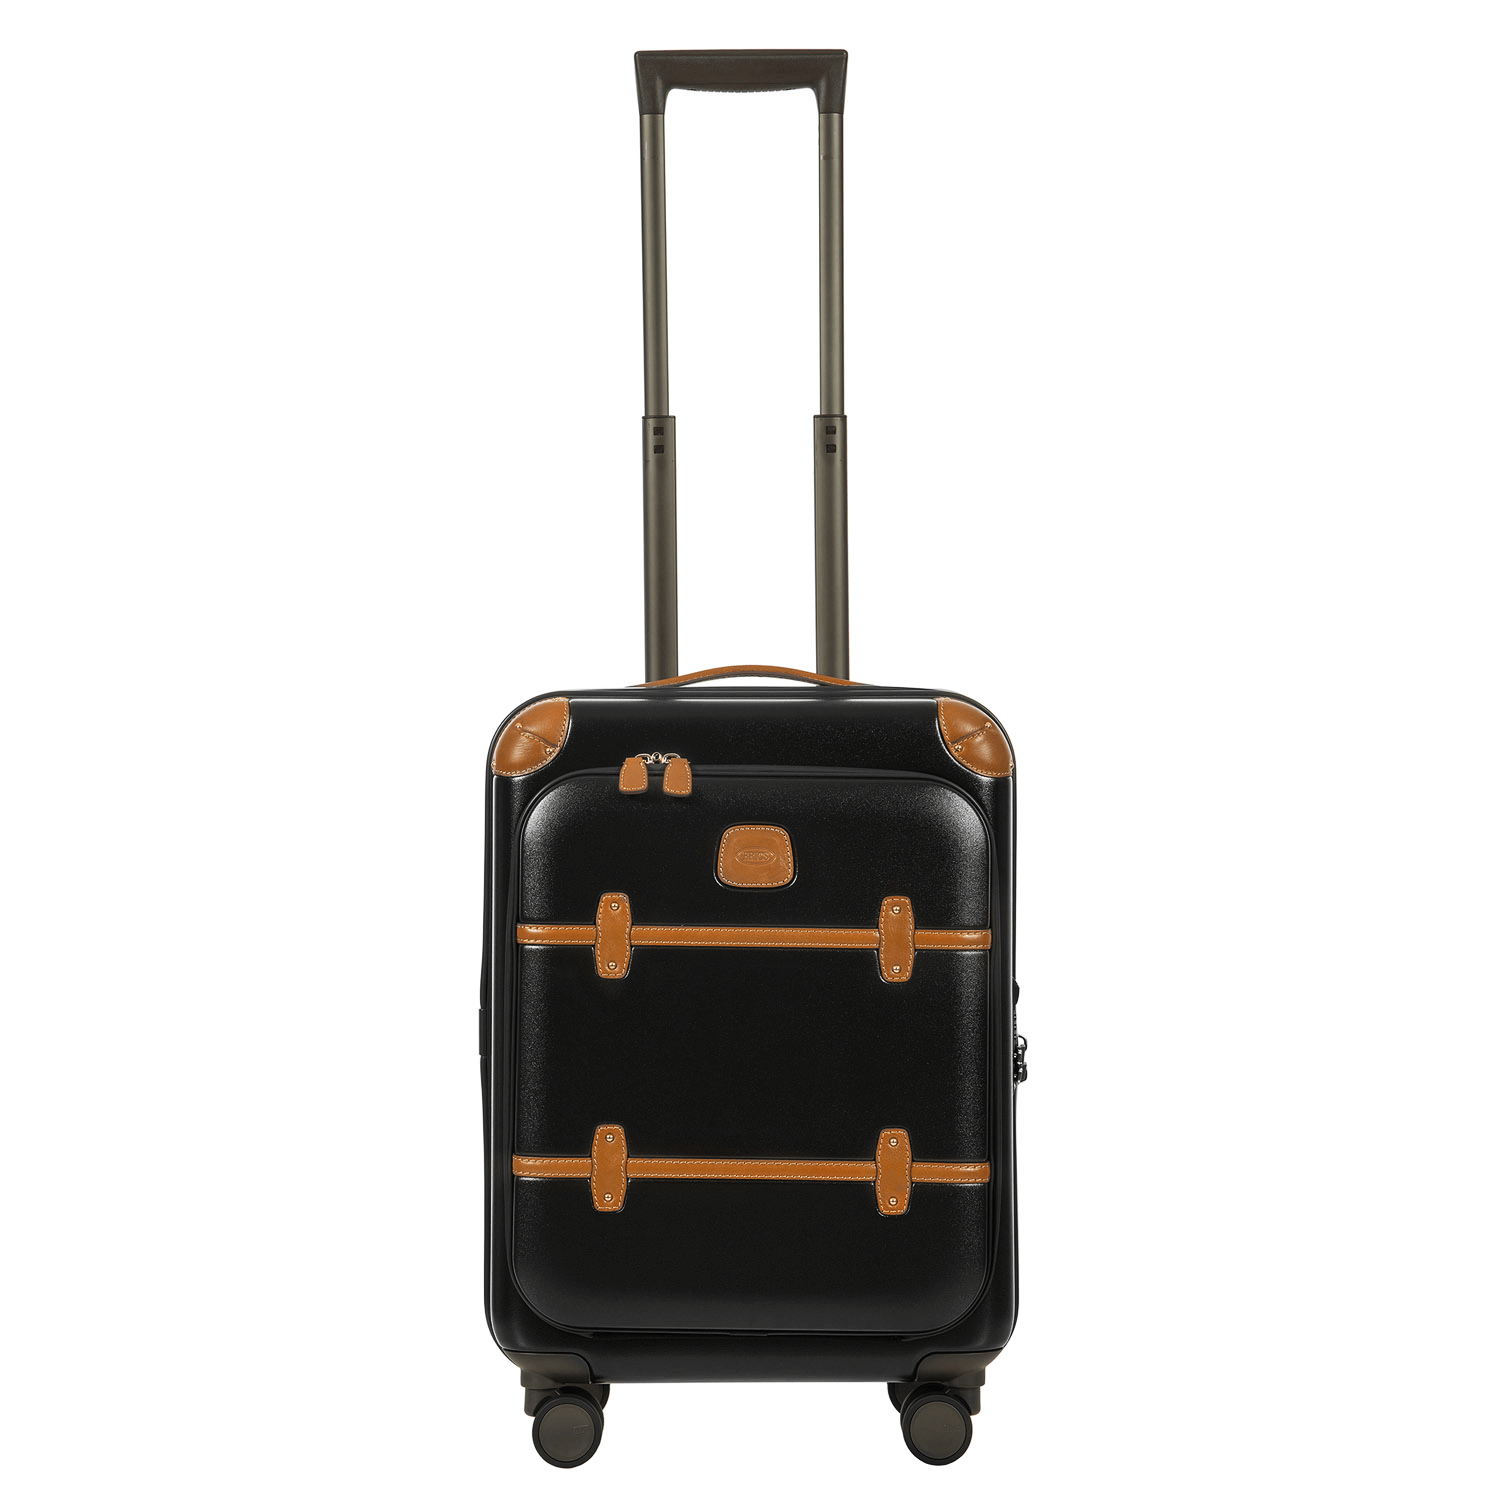 a1ae4aa05 Bellagio Business V2.0 21″ Carry-On Spinner   Cabin Luggage   BRIC'S ...